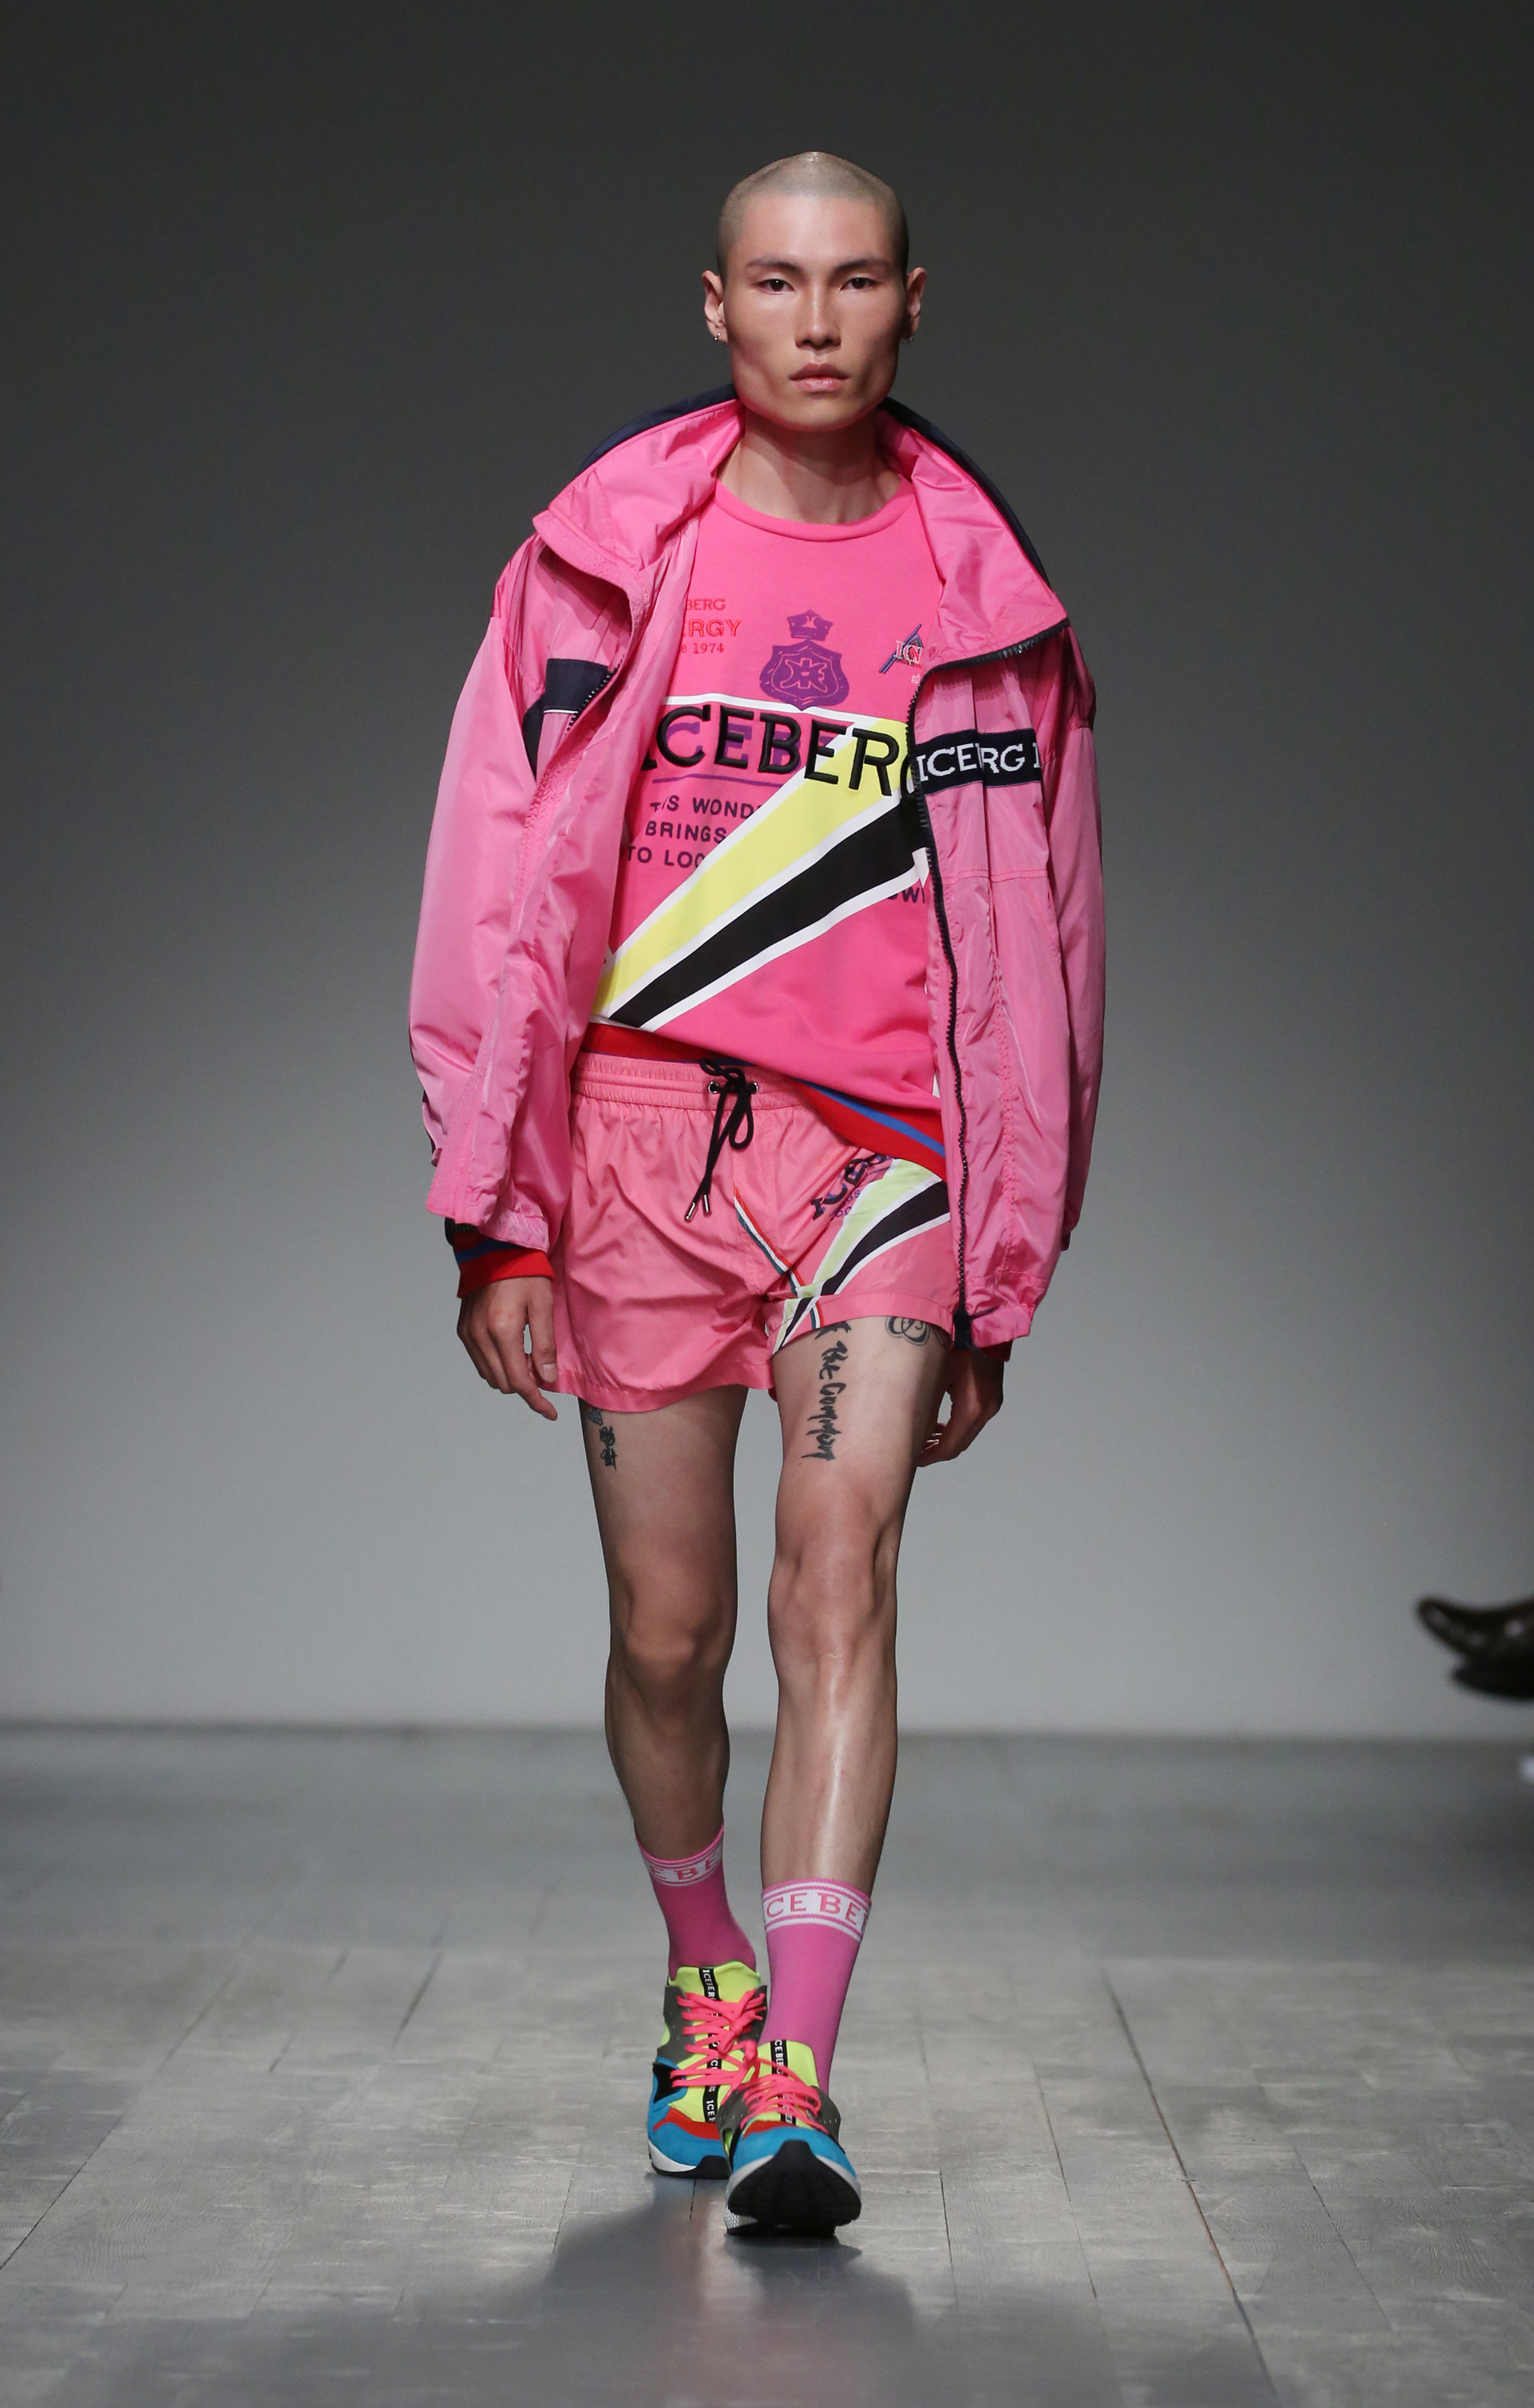 A model on the catwalk during the ICEBERG London Fashion Week Men's SS19 show held at BFC Show Space, London.